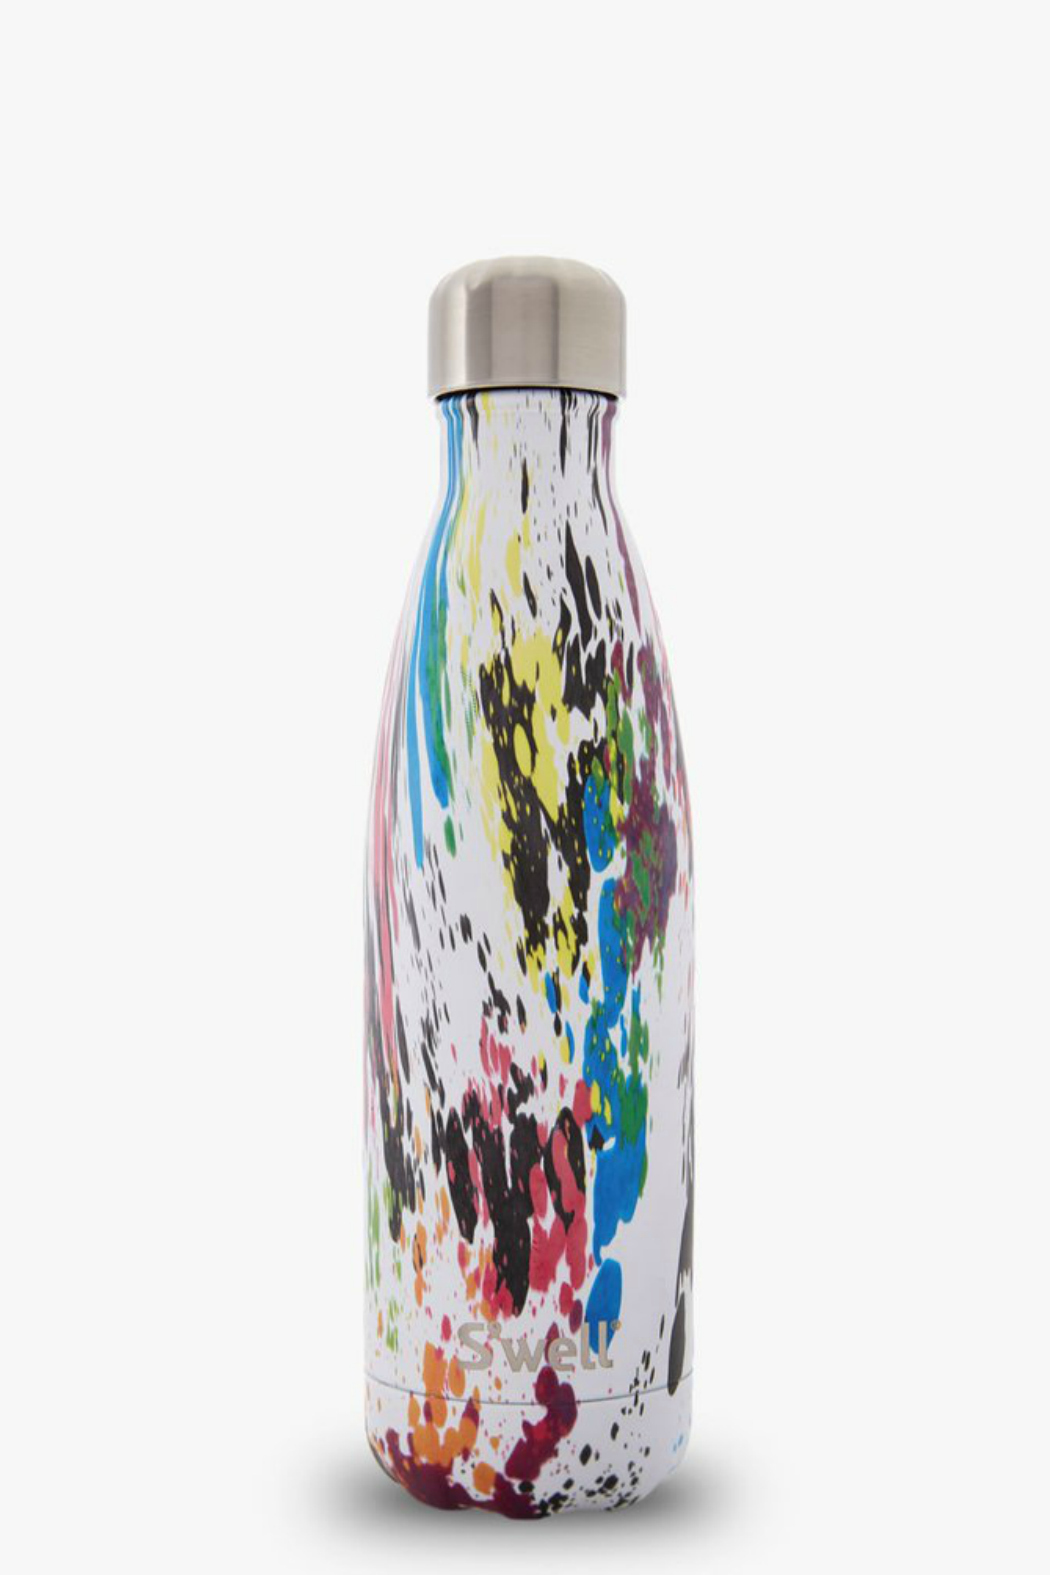 S Well Rainbow Water Bottle From Minnesota By General